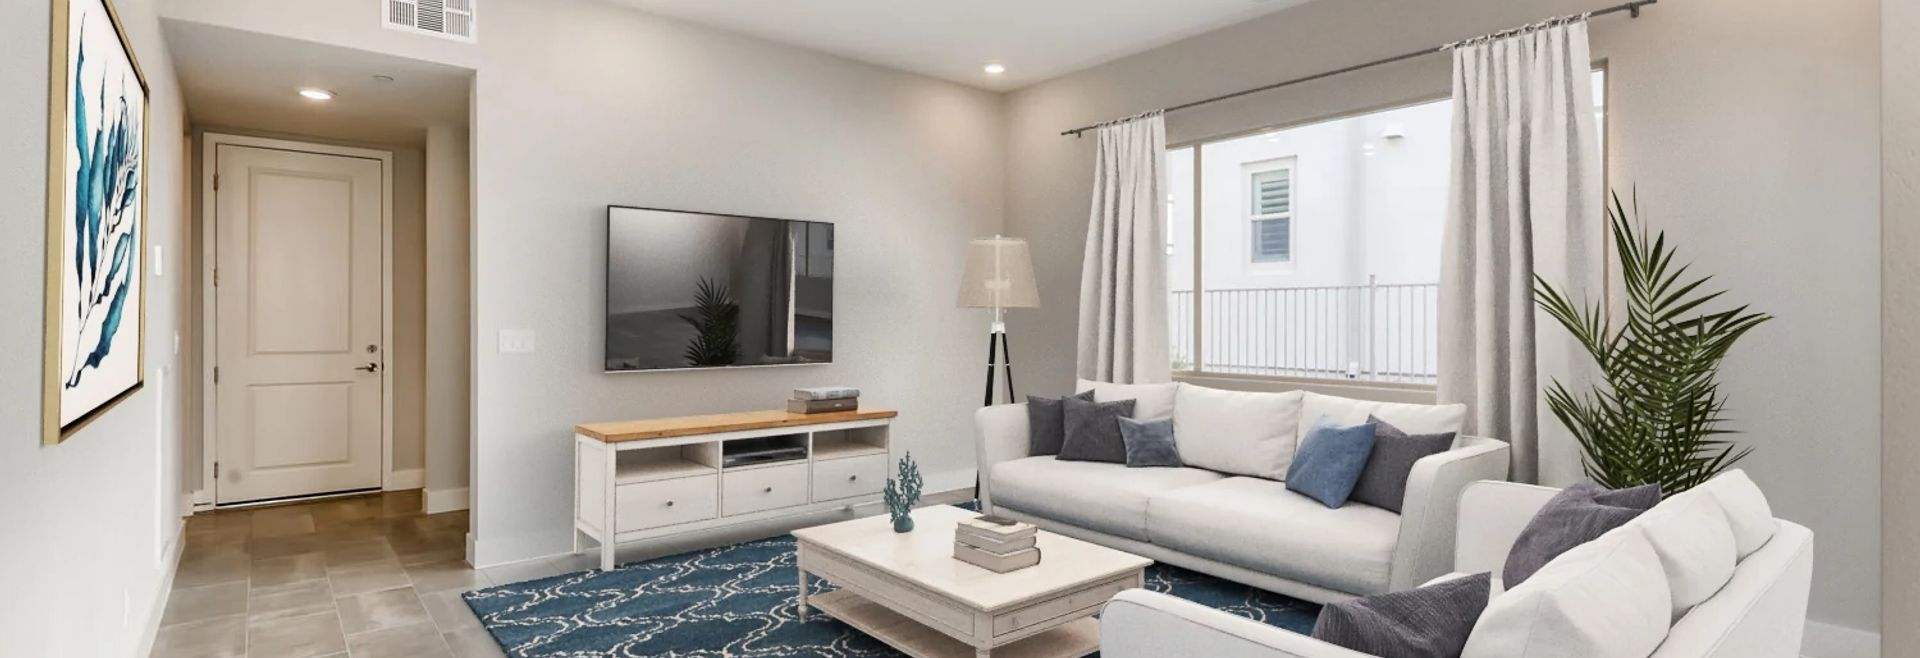 Living Area featured in the Radiant By Shea Homes - Trilogy in Las Vegas, NV